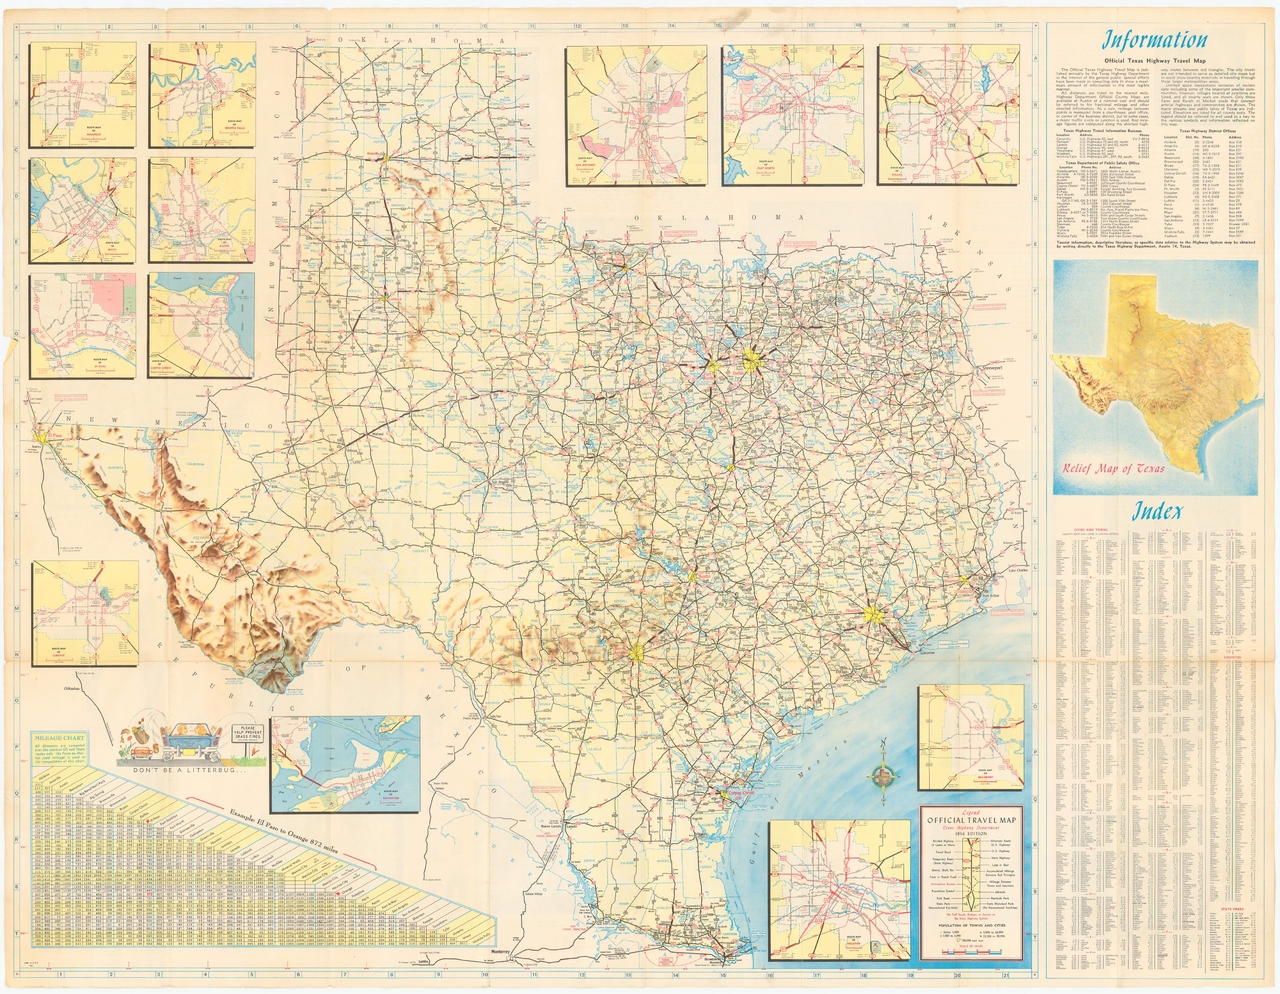 File Official Texas Highway Map Smallpng Wikimedia Commons - Texas road map